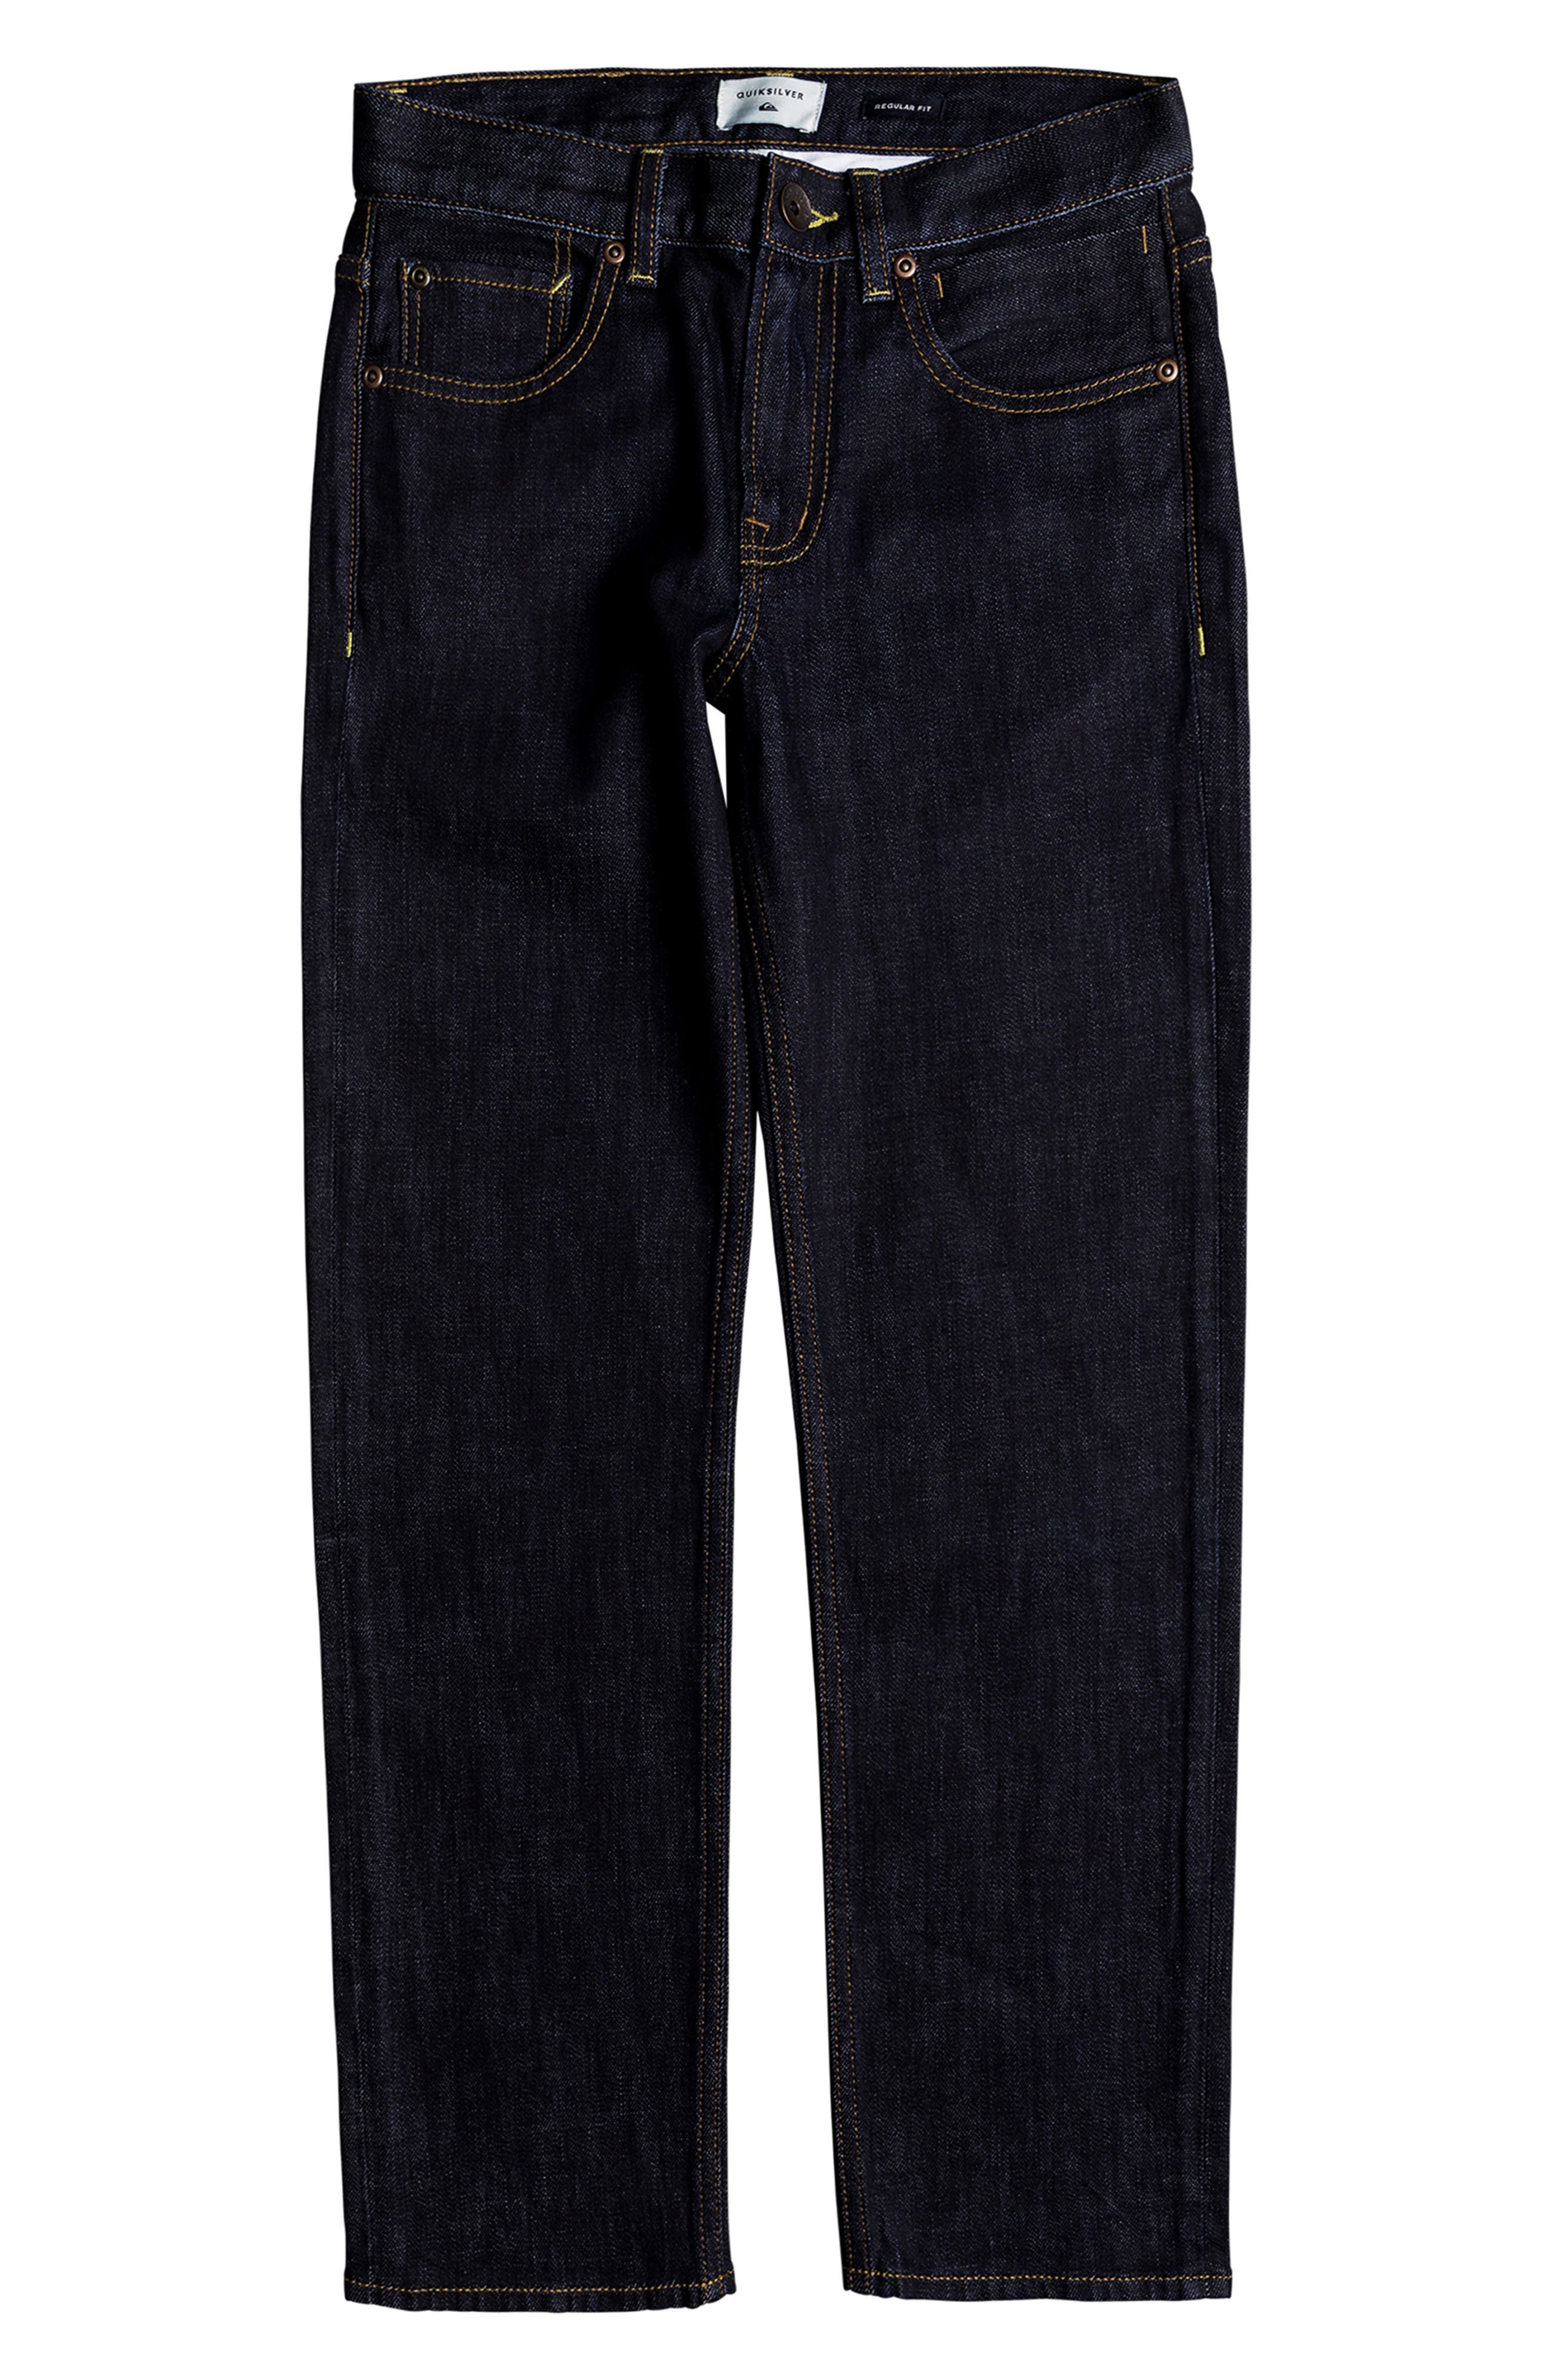 Sequel Straight Leg Jeans,                         Main,                         color, RINSE